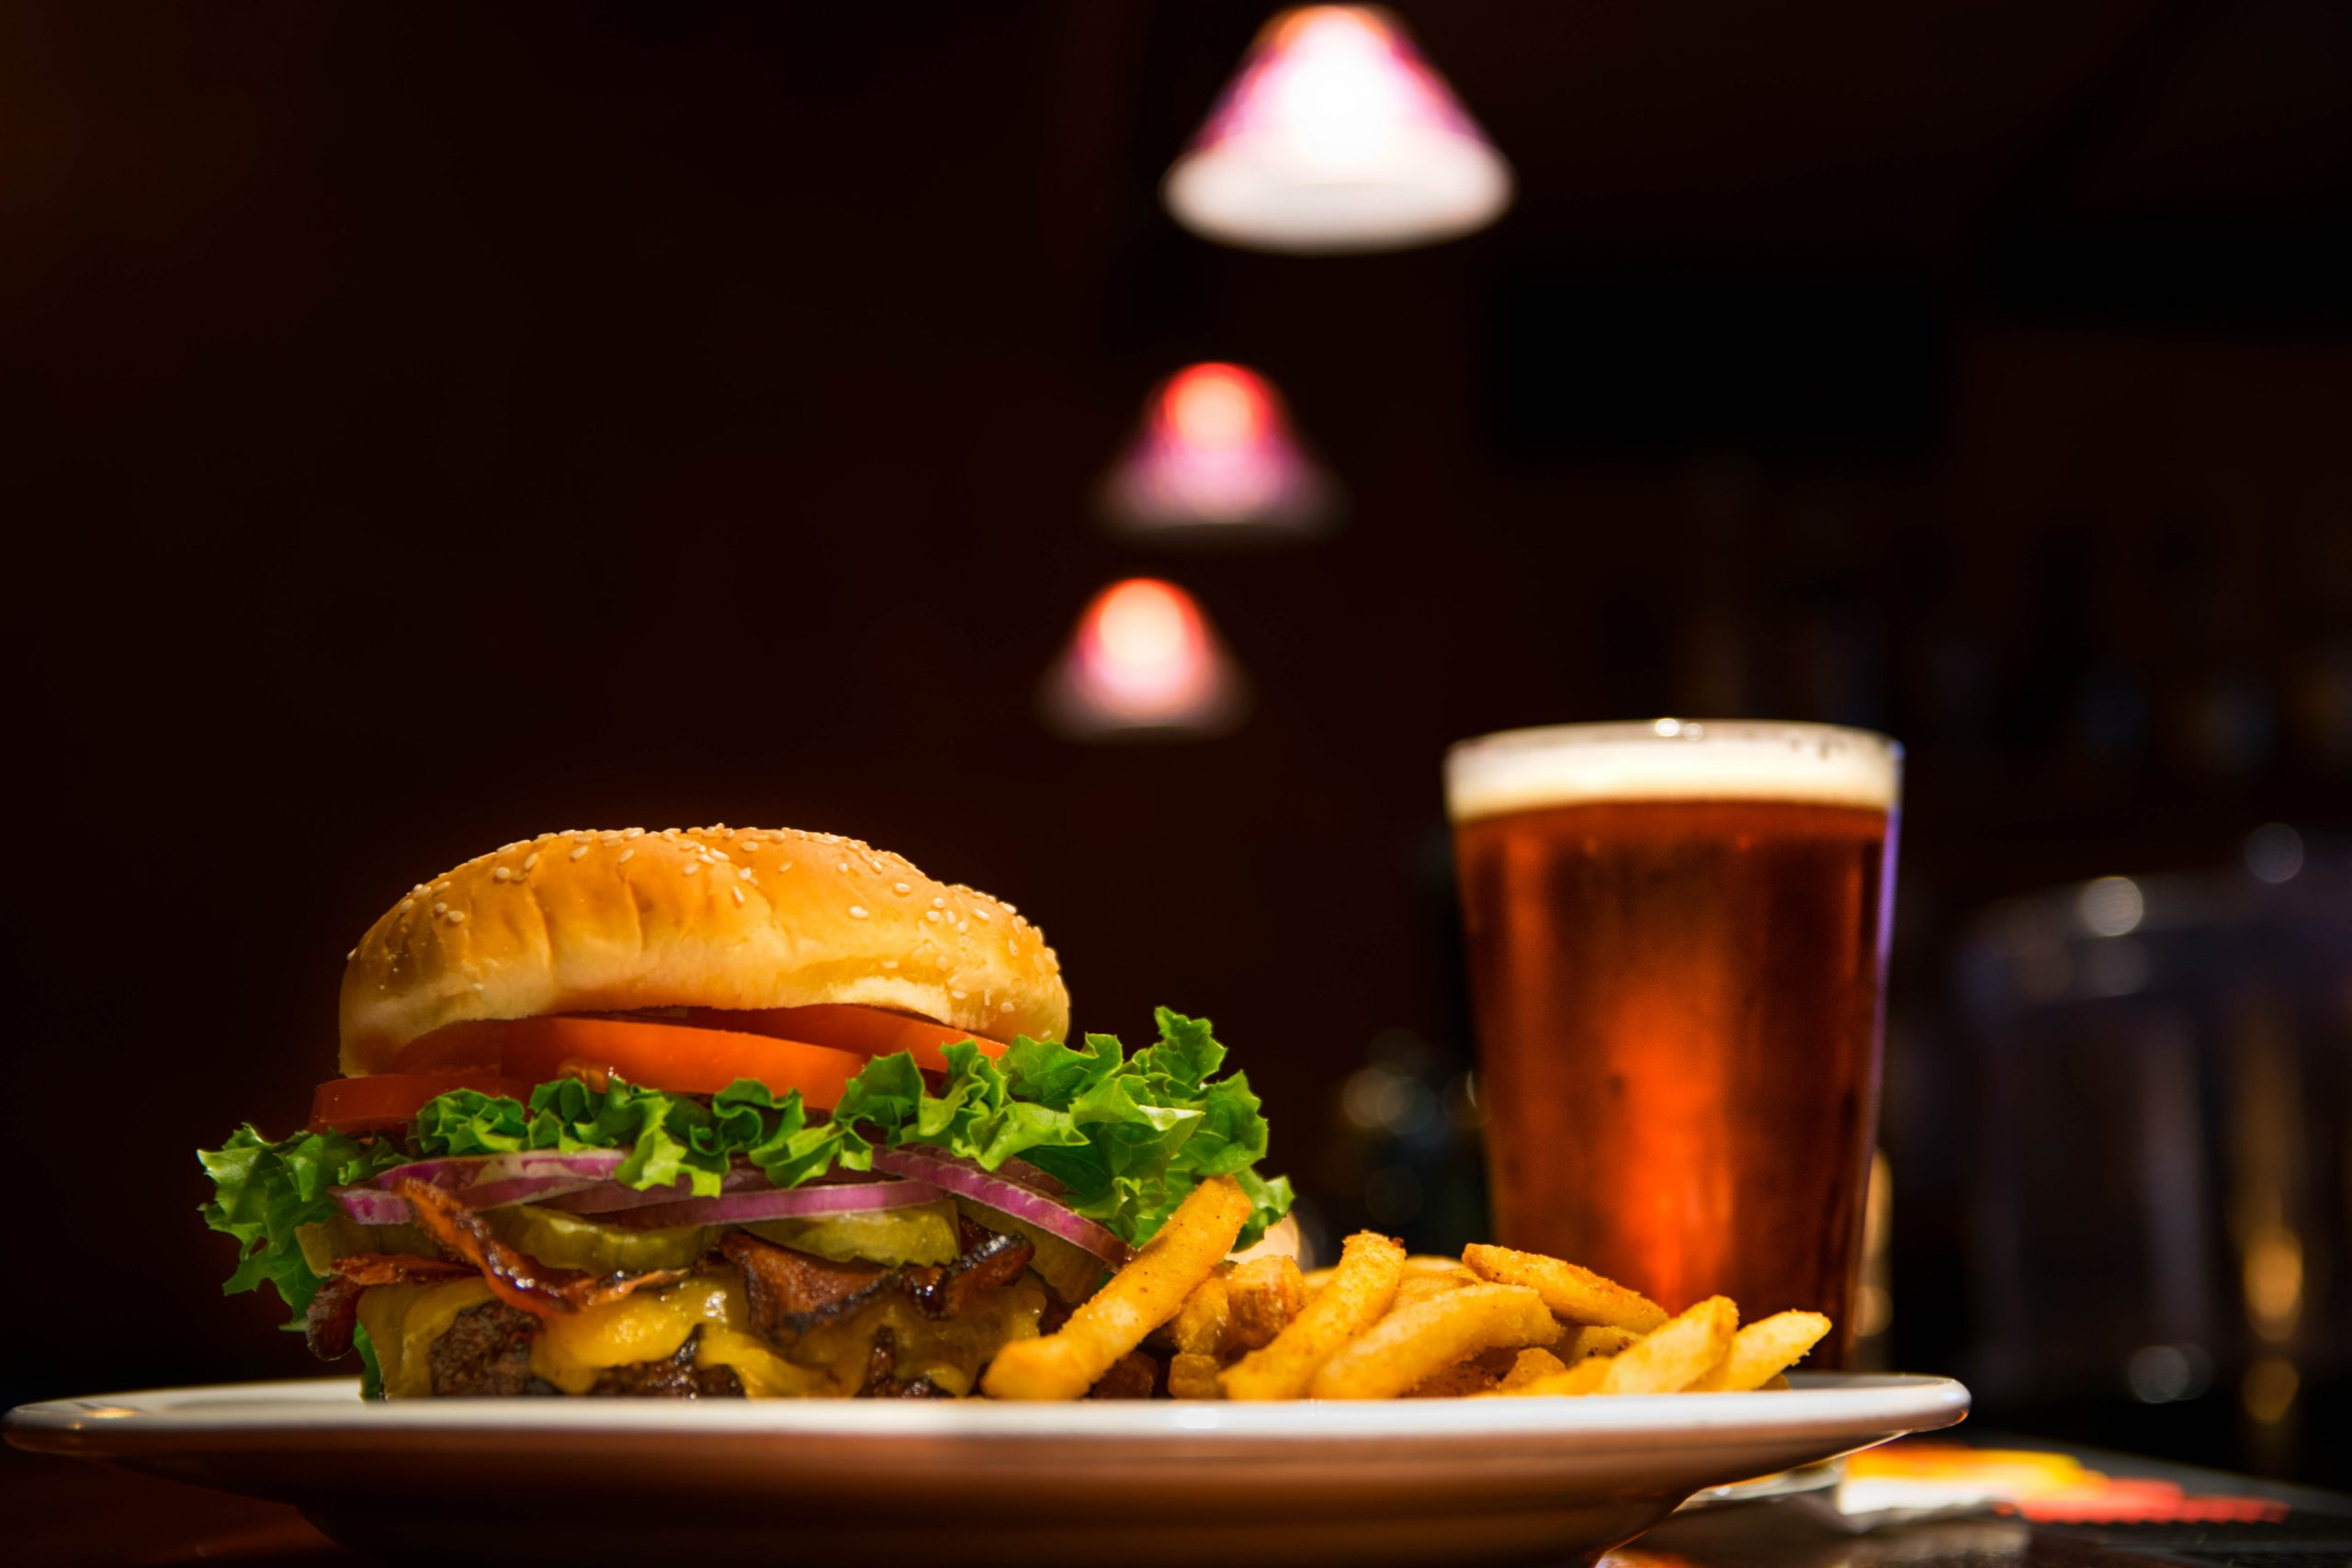 Burger, fries and a pint | How you can prevent an after dinner dip